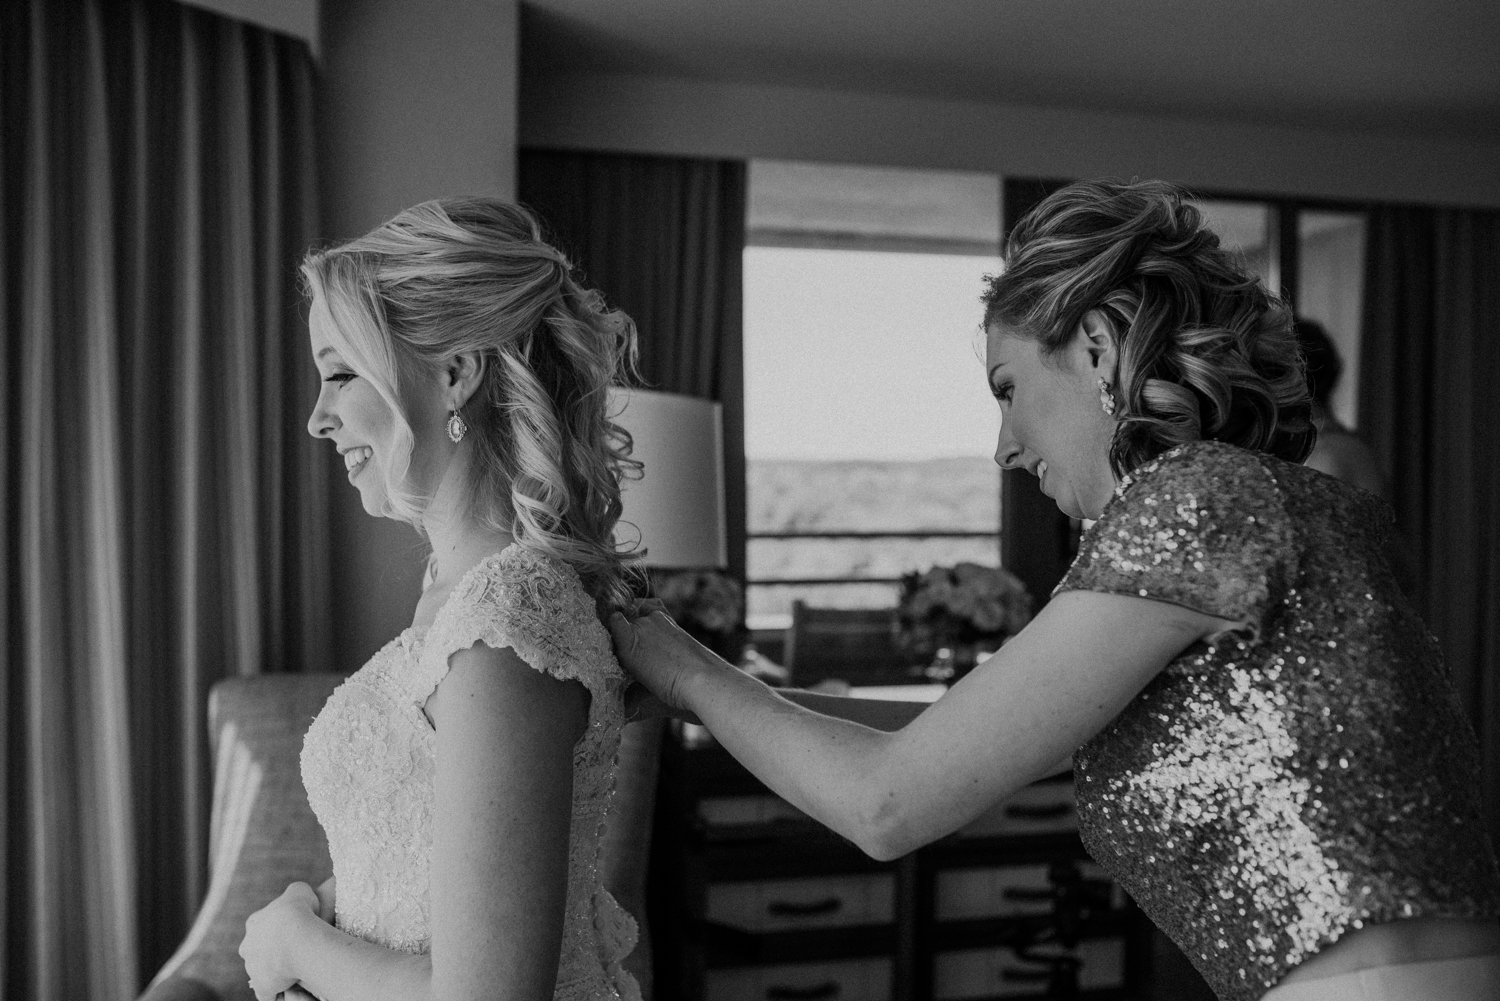 A maid of honor helps the bride get her dress on for her wedding day at Lansdowne Resort.